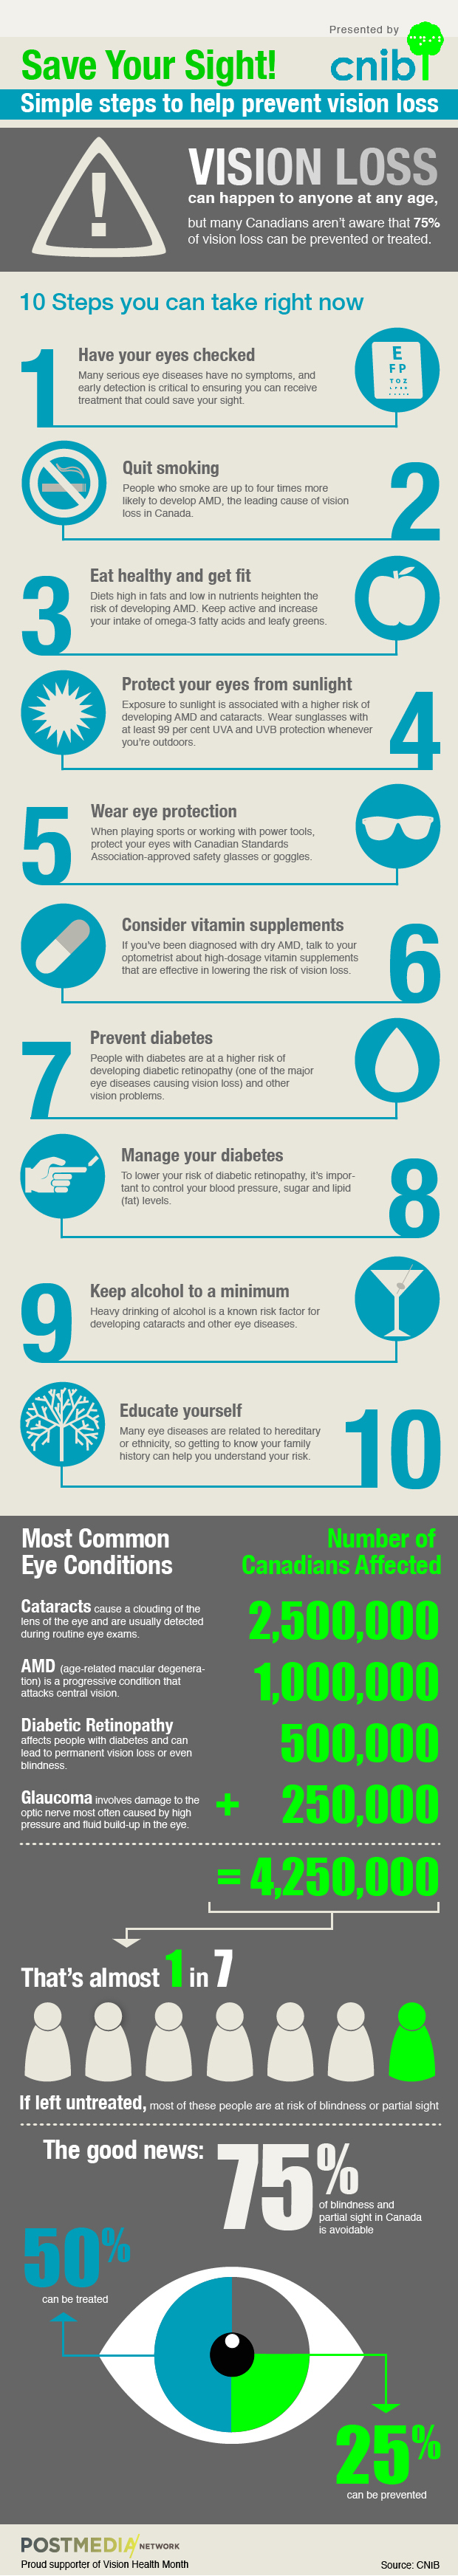 Save_your_sight_infographic